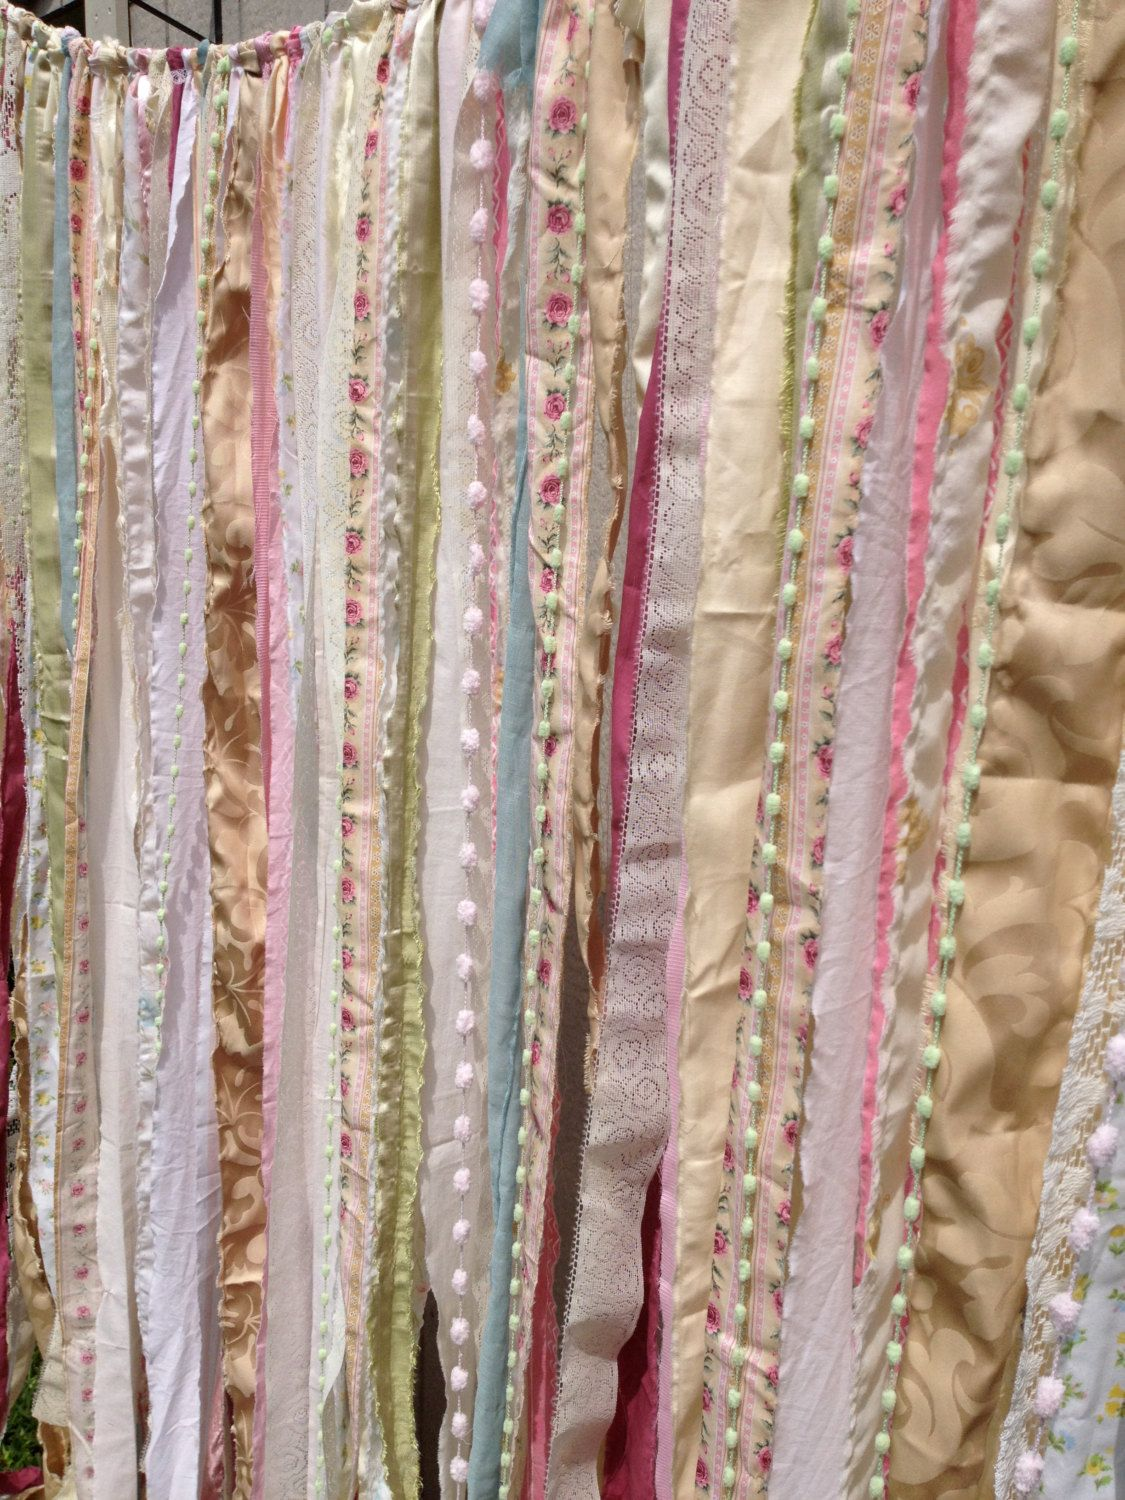 Diy Shabby Rustic Chic Boho Fabric Garland Backdrop New